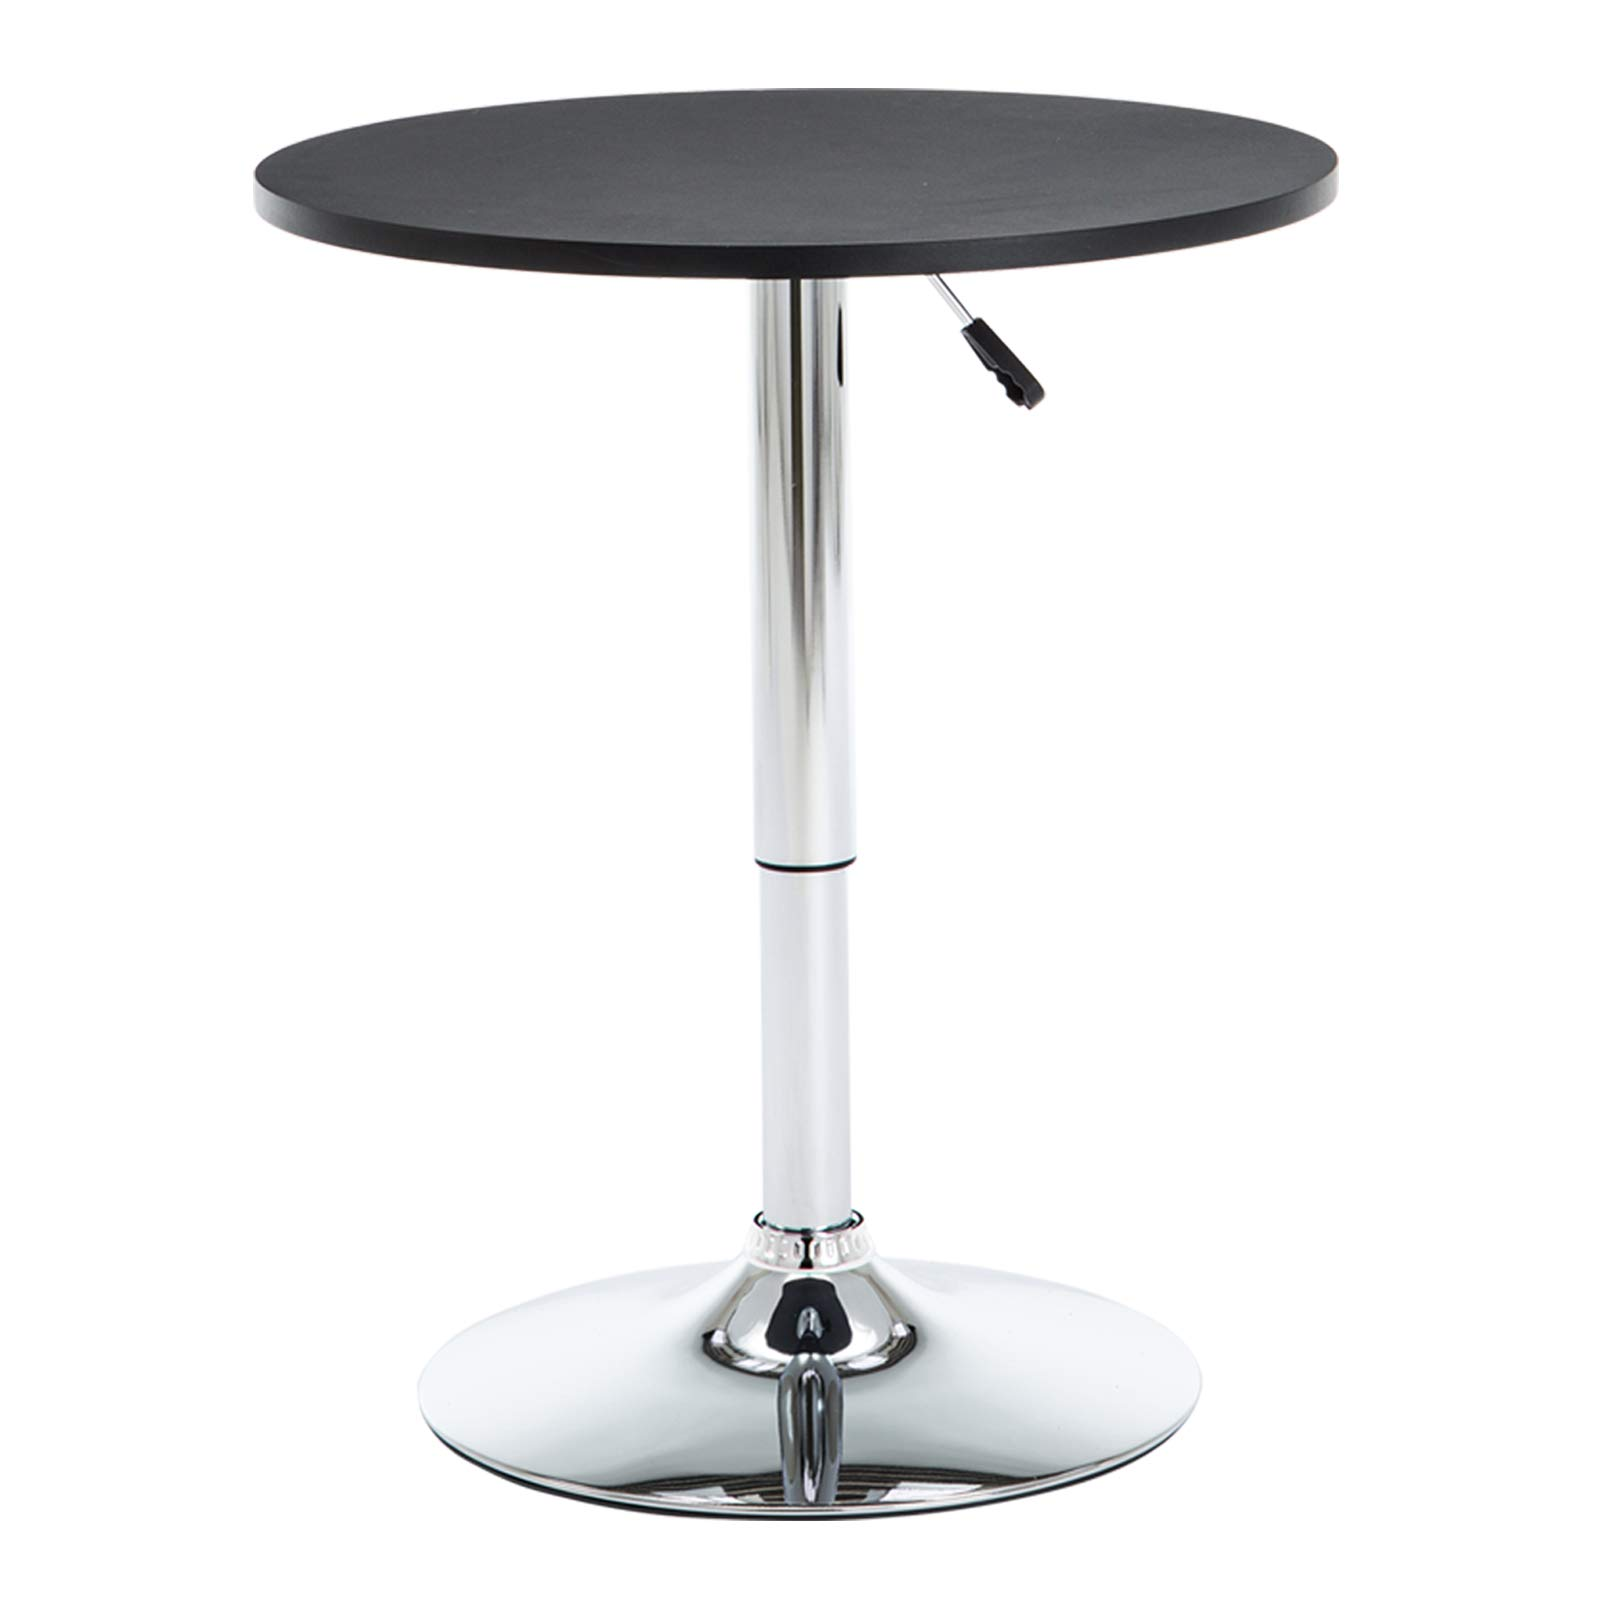 Round Bar Table, Height Adjustable Pub Table, Swivel Cocktail Table with MDF Black Round Top and Chromed Metal Base. by GOTMINSI